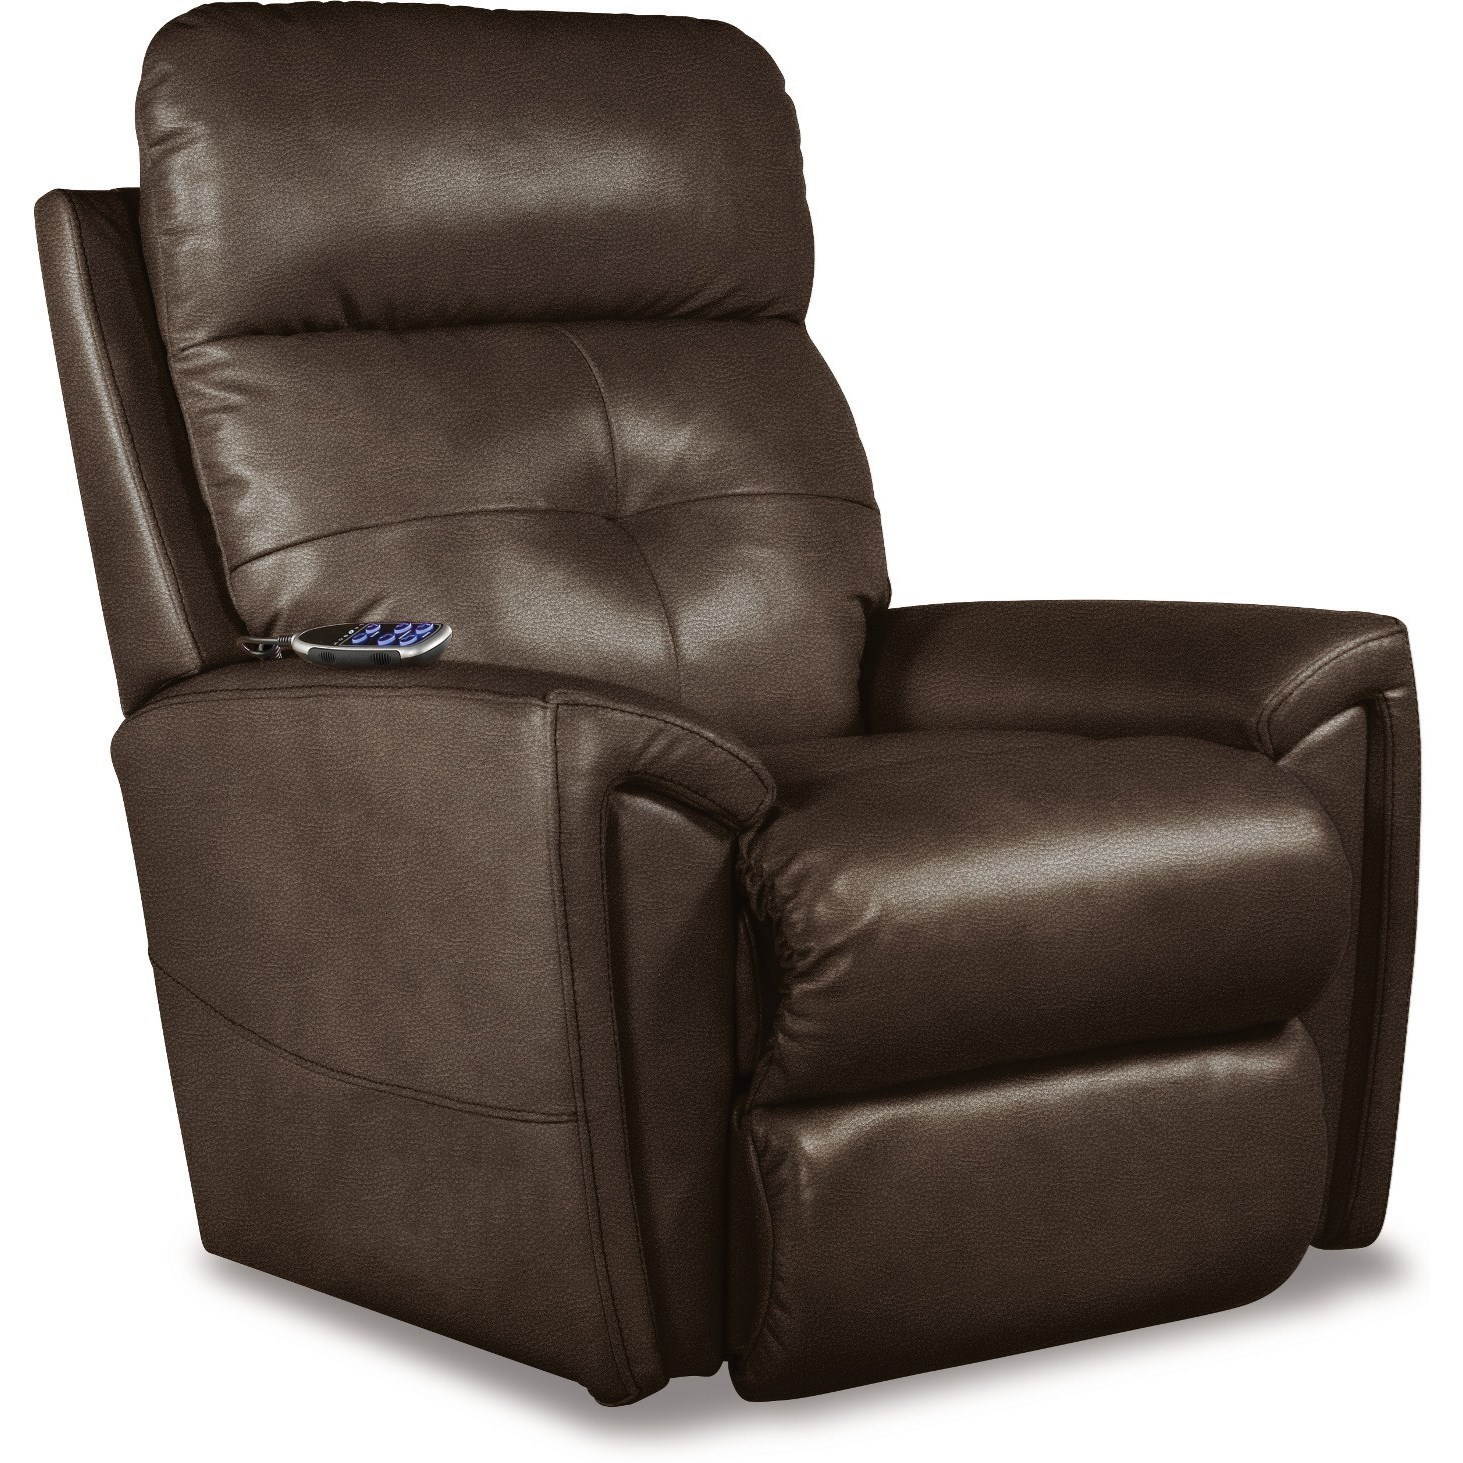 Douglas Power Rocking Recliner w/ Headrest & Lumbar by La-Z-Boy at Fisher Home Furnishings